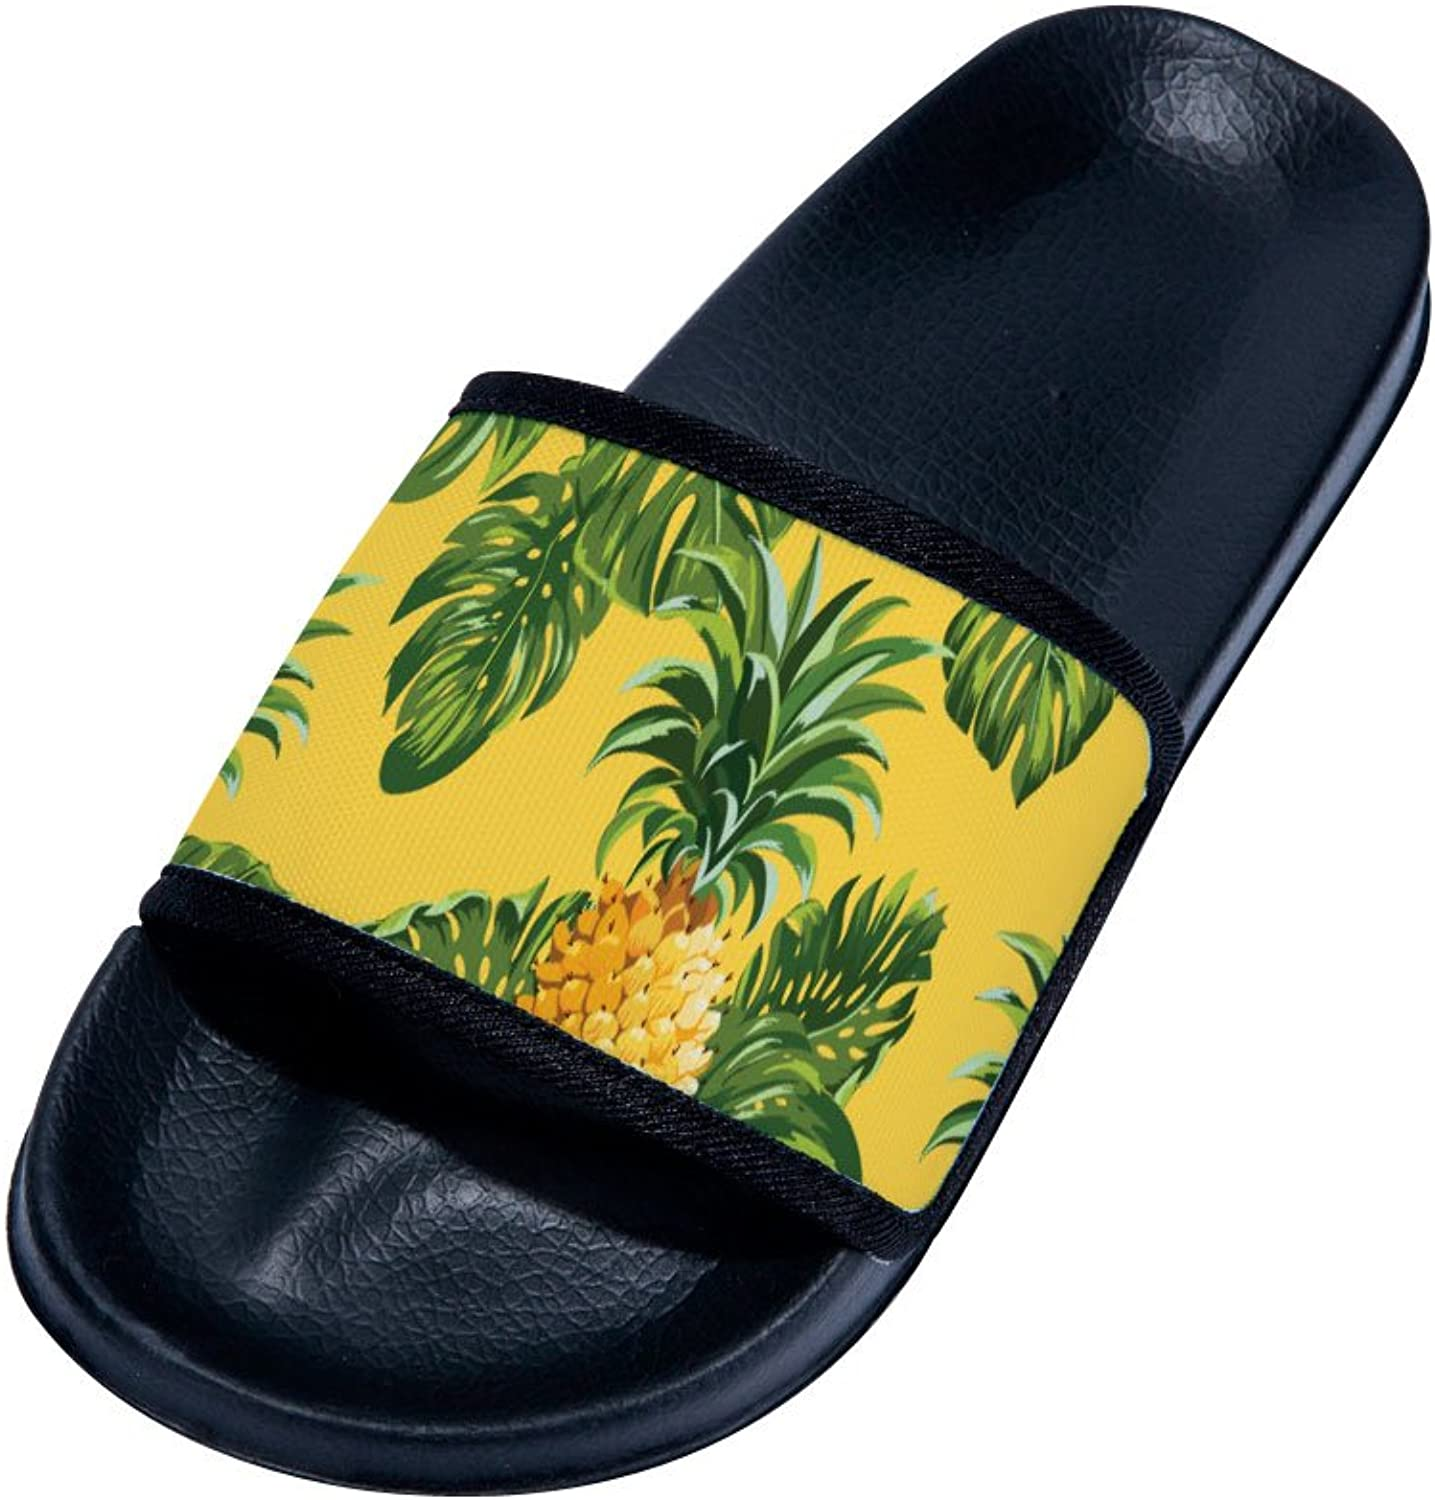 Buteri Pineapple(Black) Family Quick-Drying Non-Slip Slippers